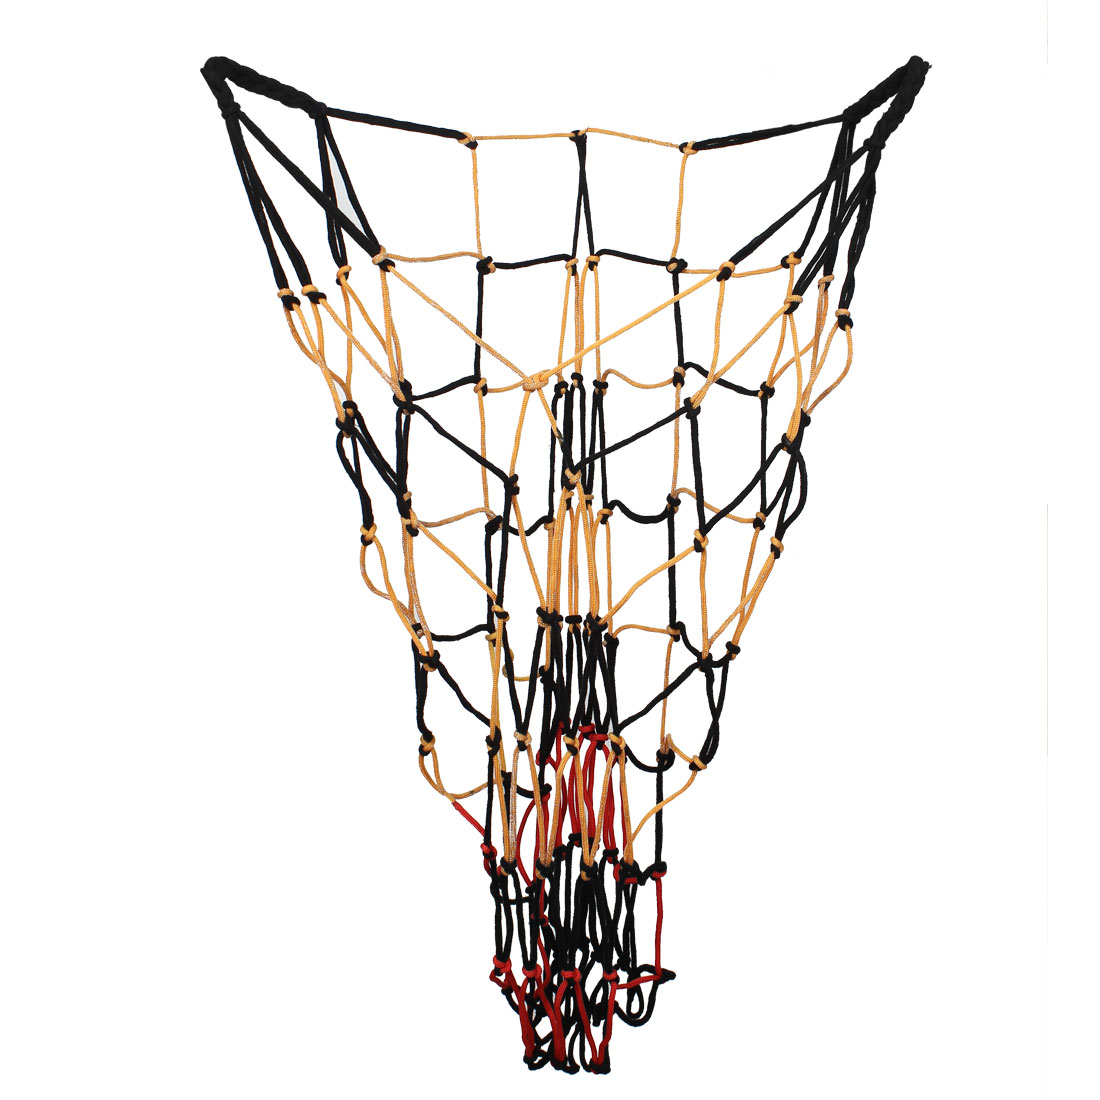 Ball Carry Net Bag Mess Carrier Volleyball Basketball Football Soccer Sport Equipment